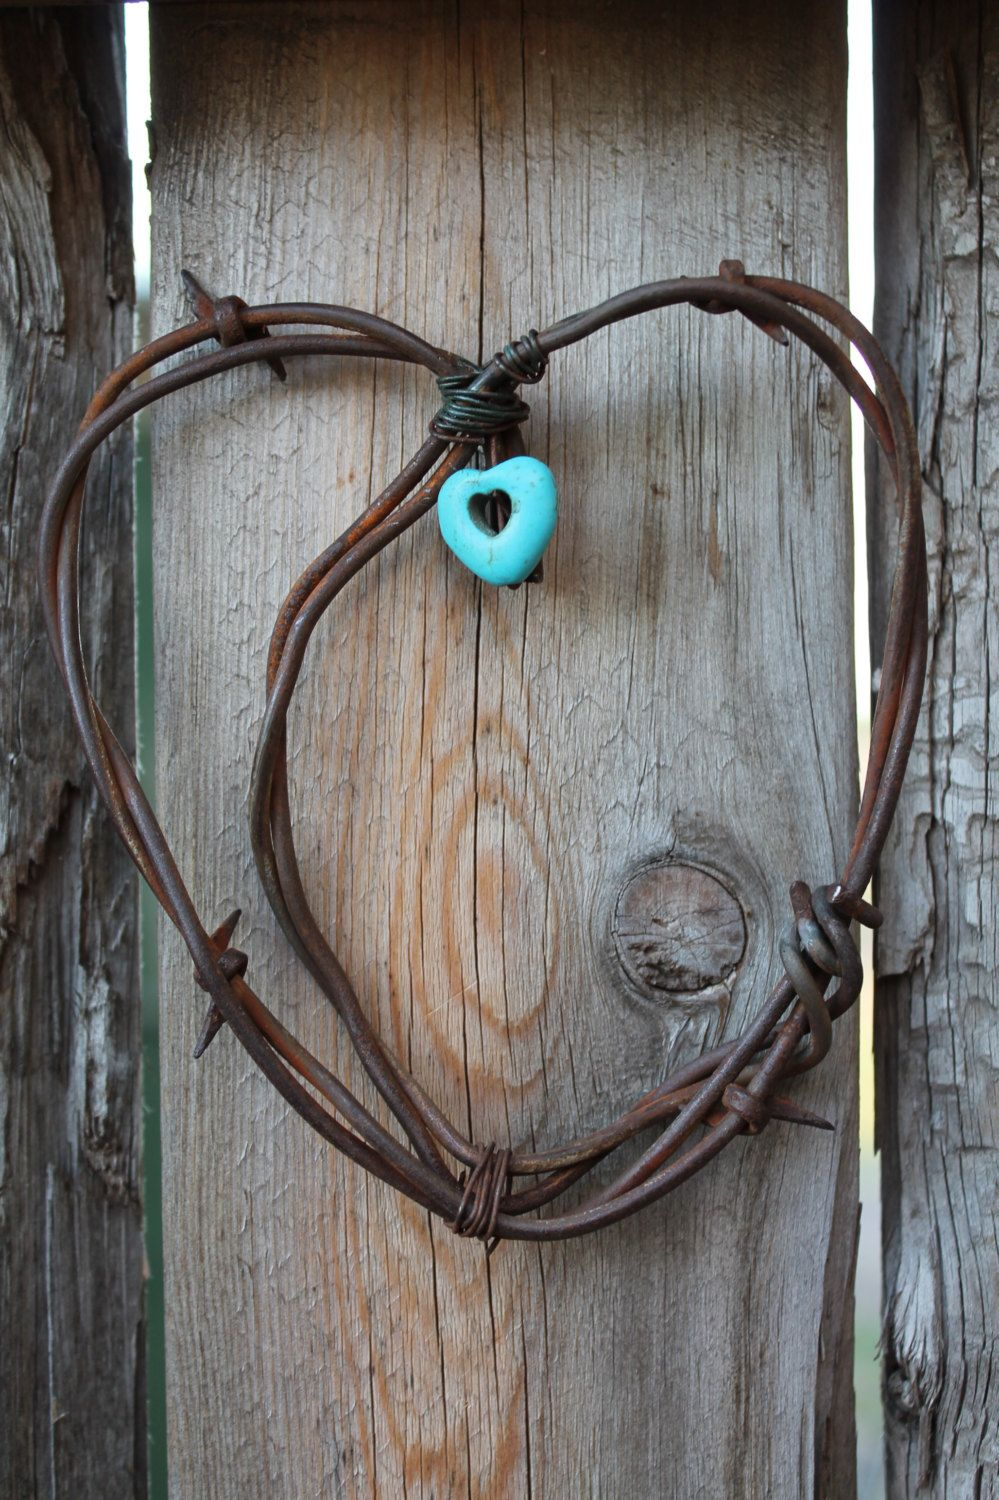 Handmade rusted barbed wire heart wall decor with turquoise heart ...